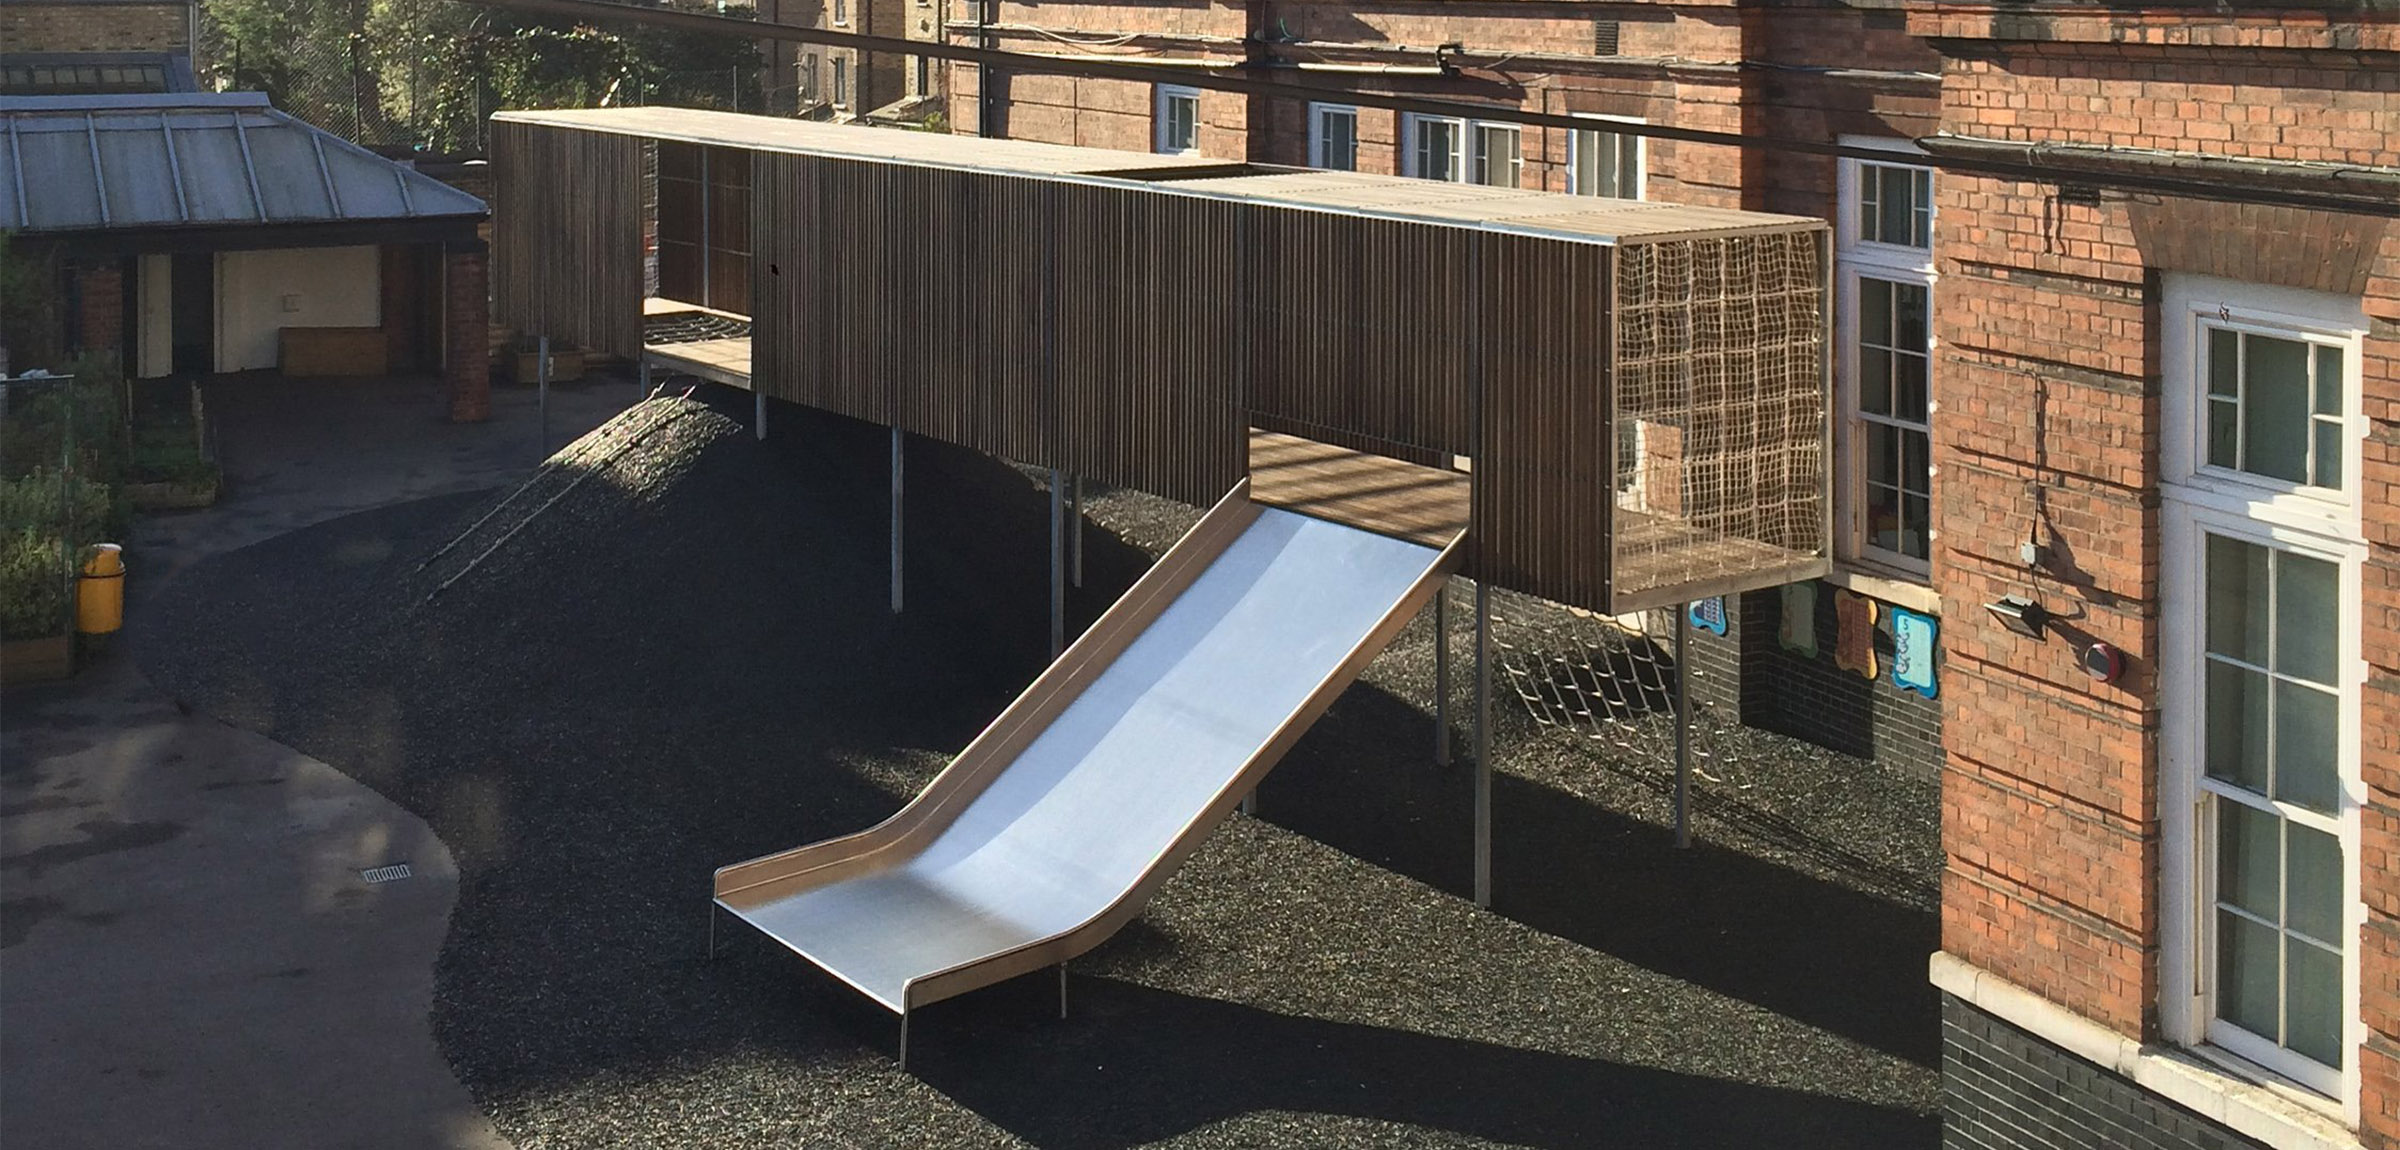 bespoke playground equipment chisenhale primary